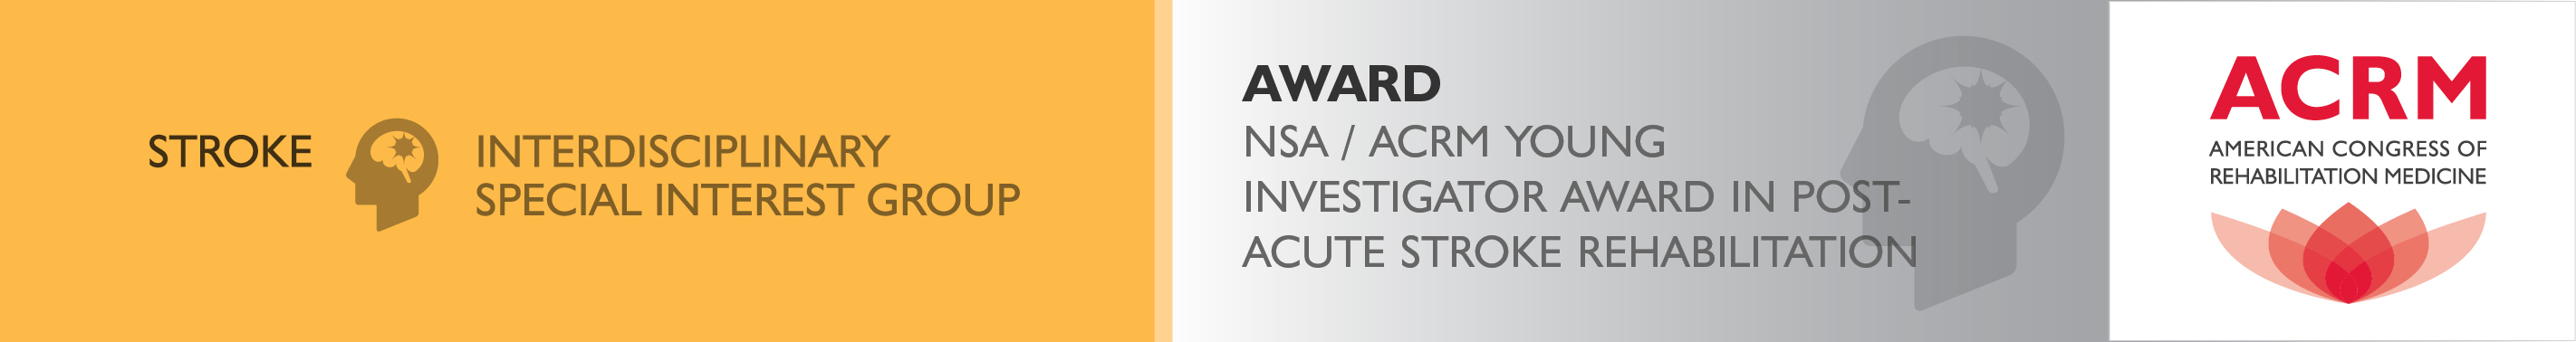 Award NSA / ACRM Young Investigator Award in Post-Acute Stroke Rehabilitation